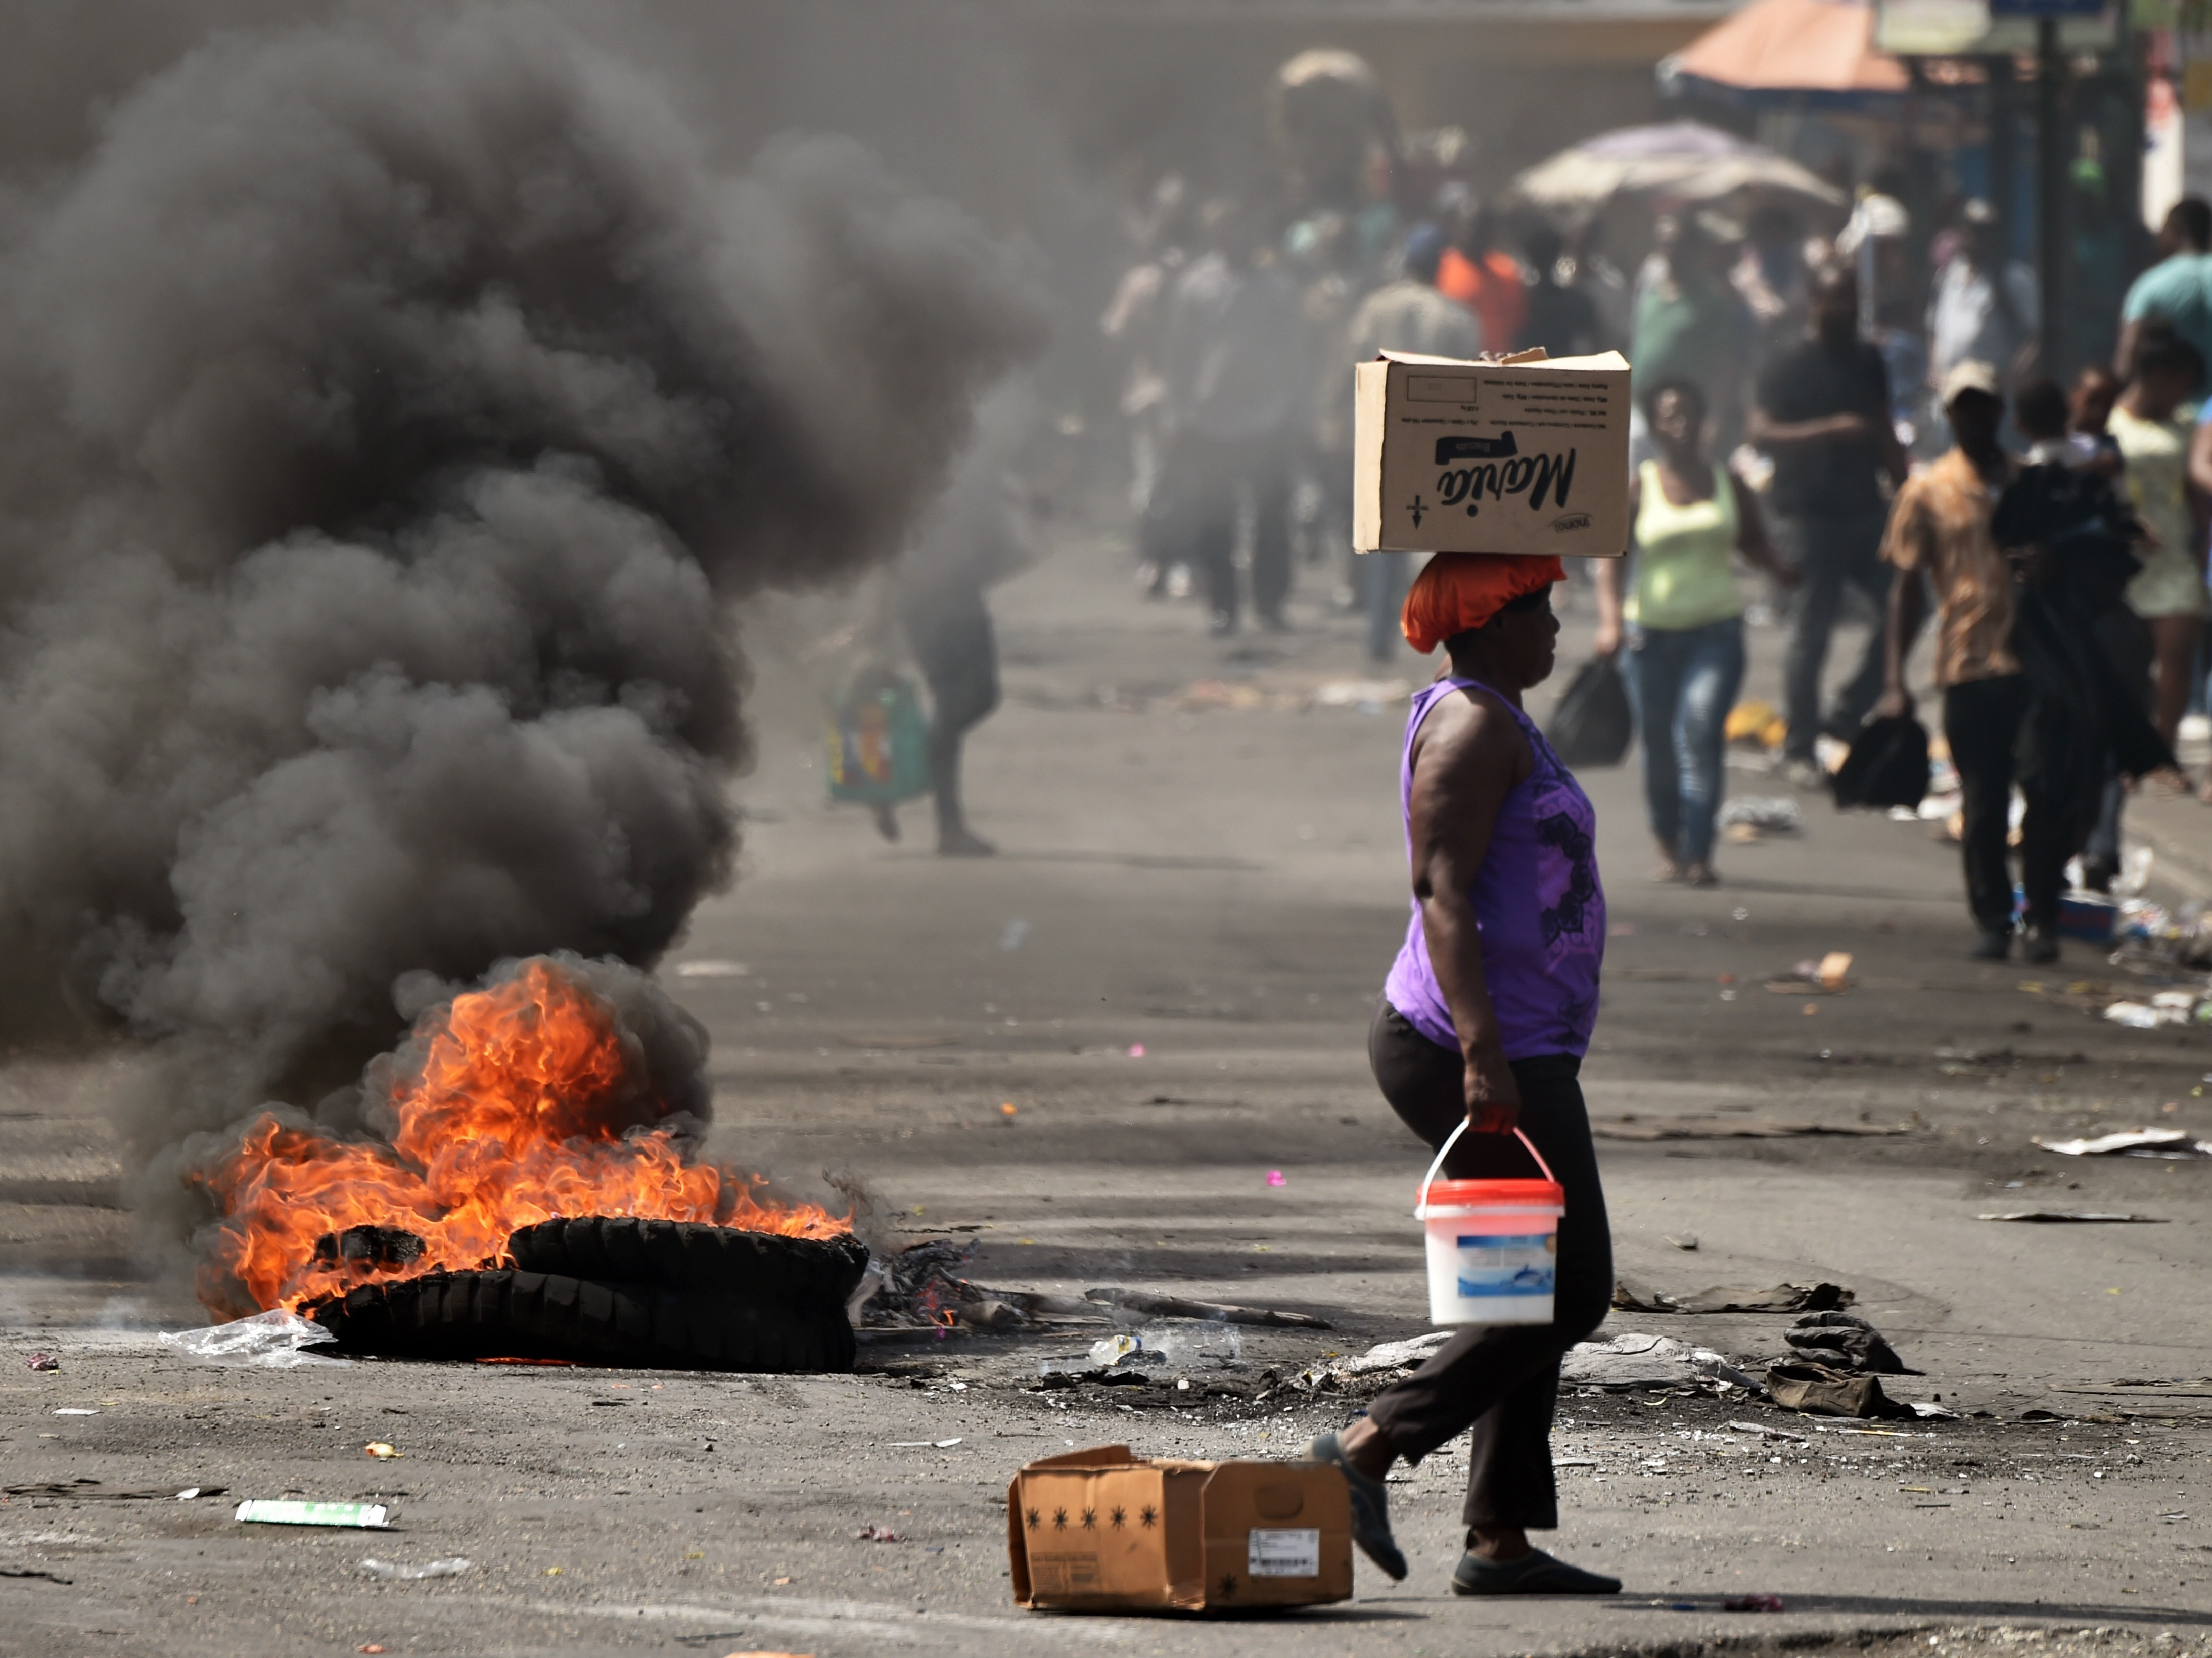 Opinion: Haiti's Troubles Must Not Be Forgotten